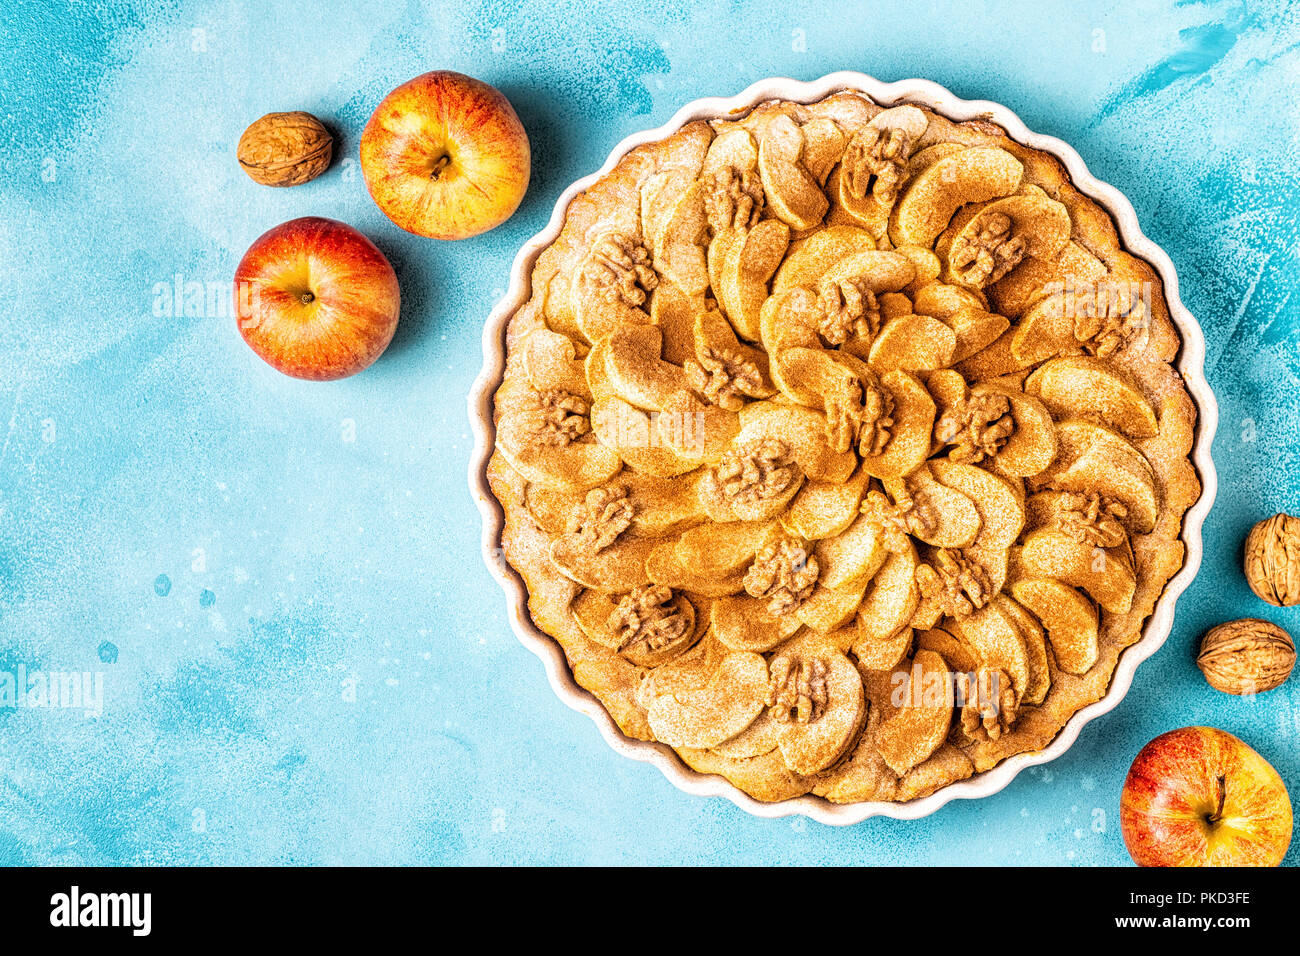 Apple pie with walnuts and cinnamon, top view. - Stock Image